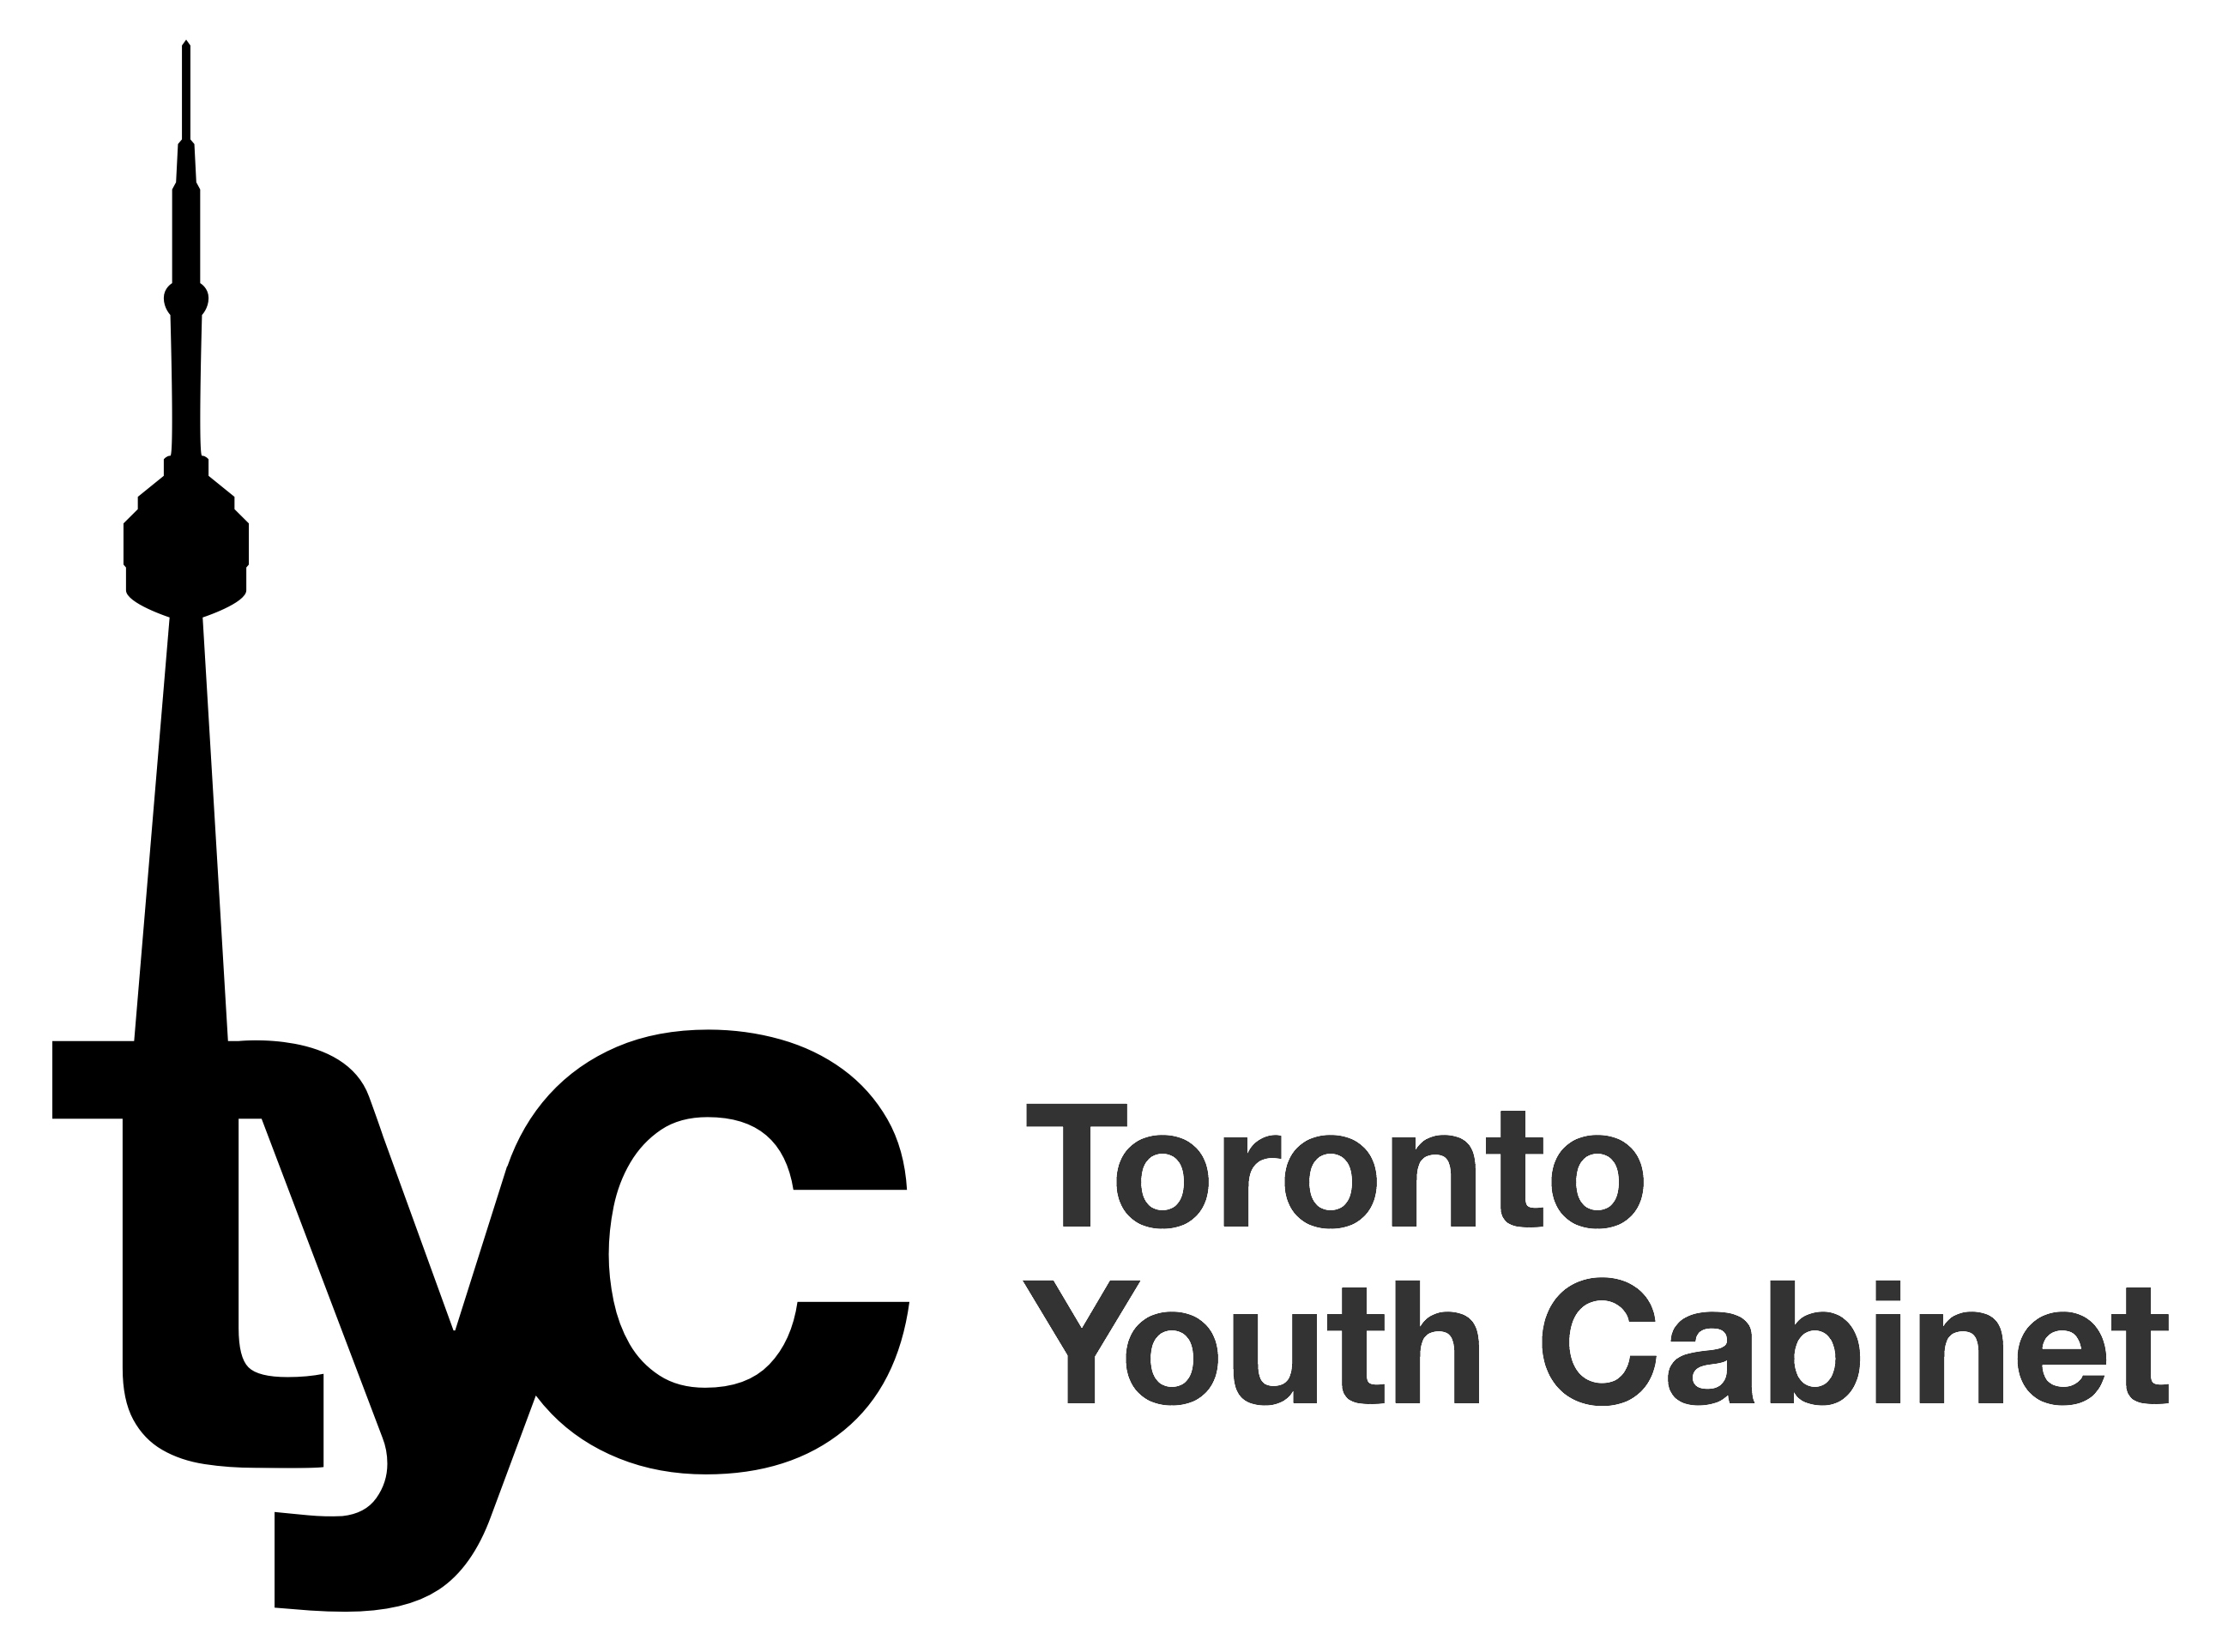 Toronto Youth Cabinet